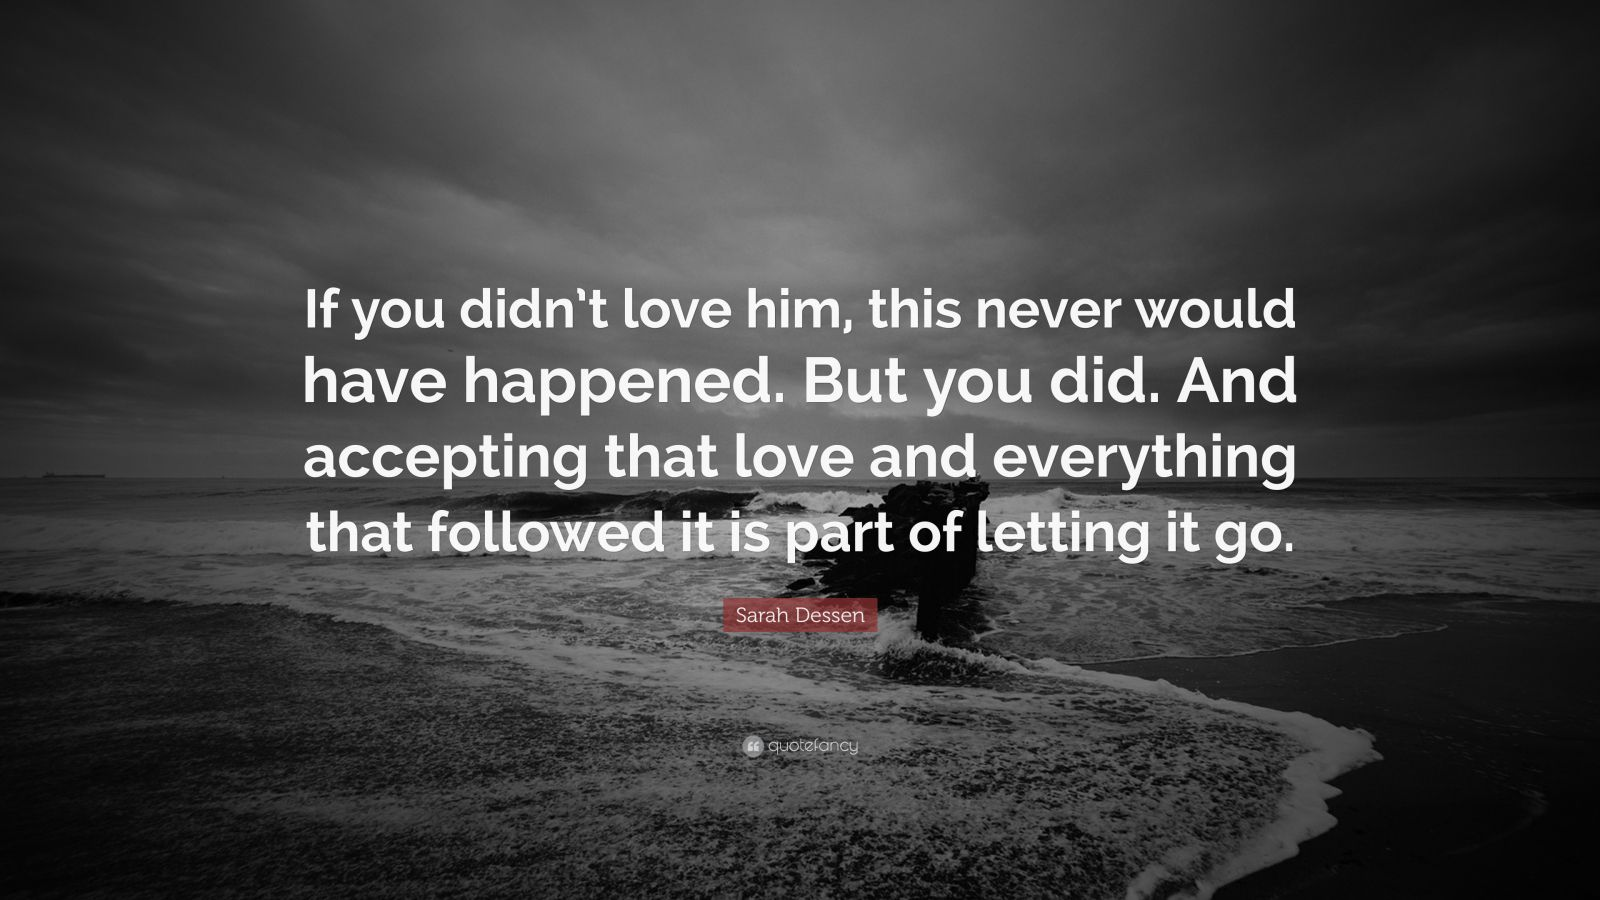 """Sarah Dessen Quote: """"If you didn't love him, this never would have happened. But you did. And accepting that love and everything that followed it is part of letting it go."""""""